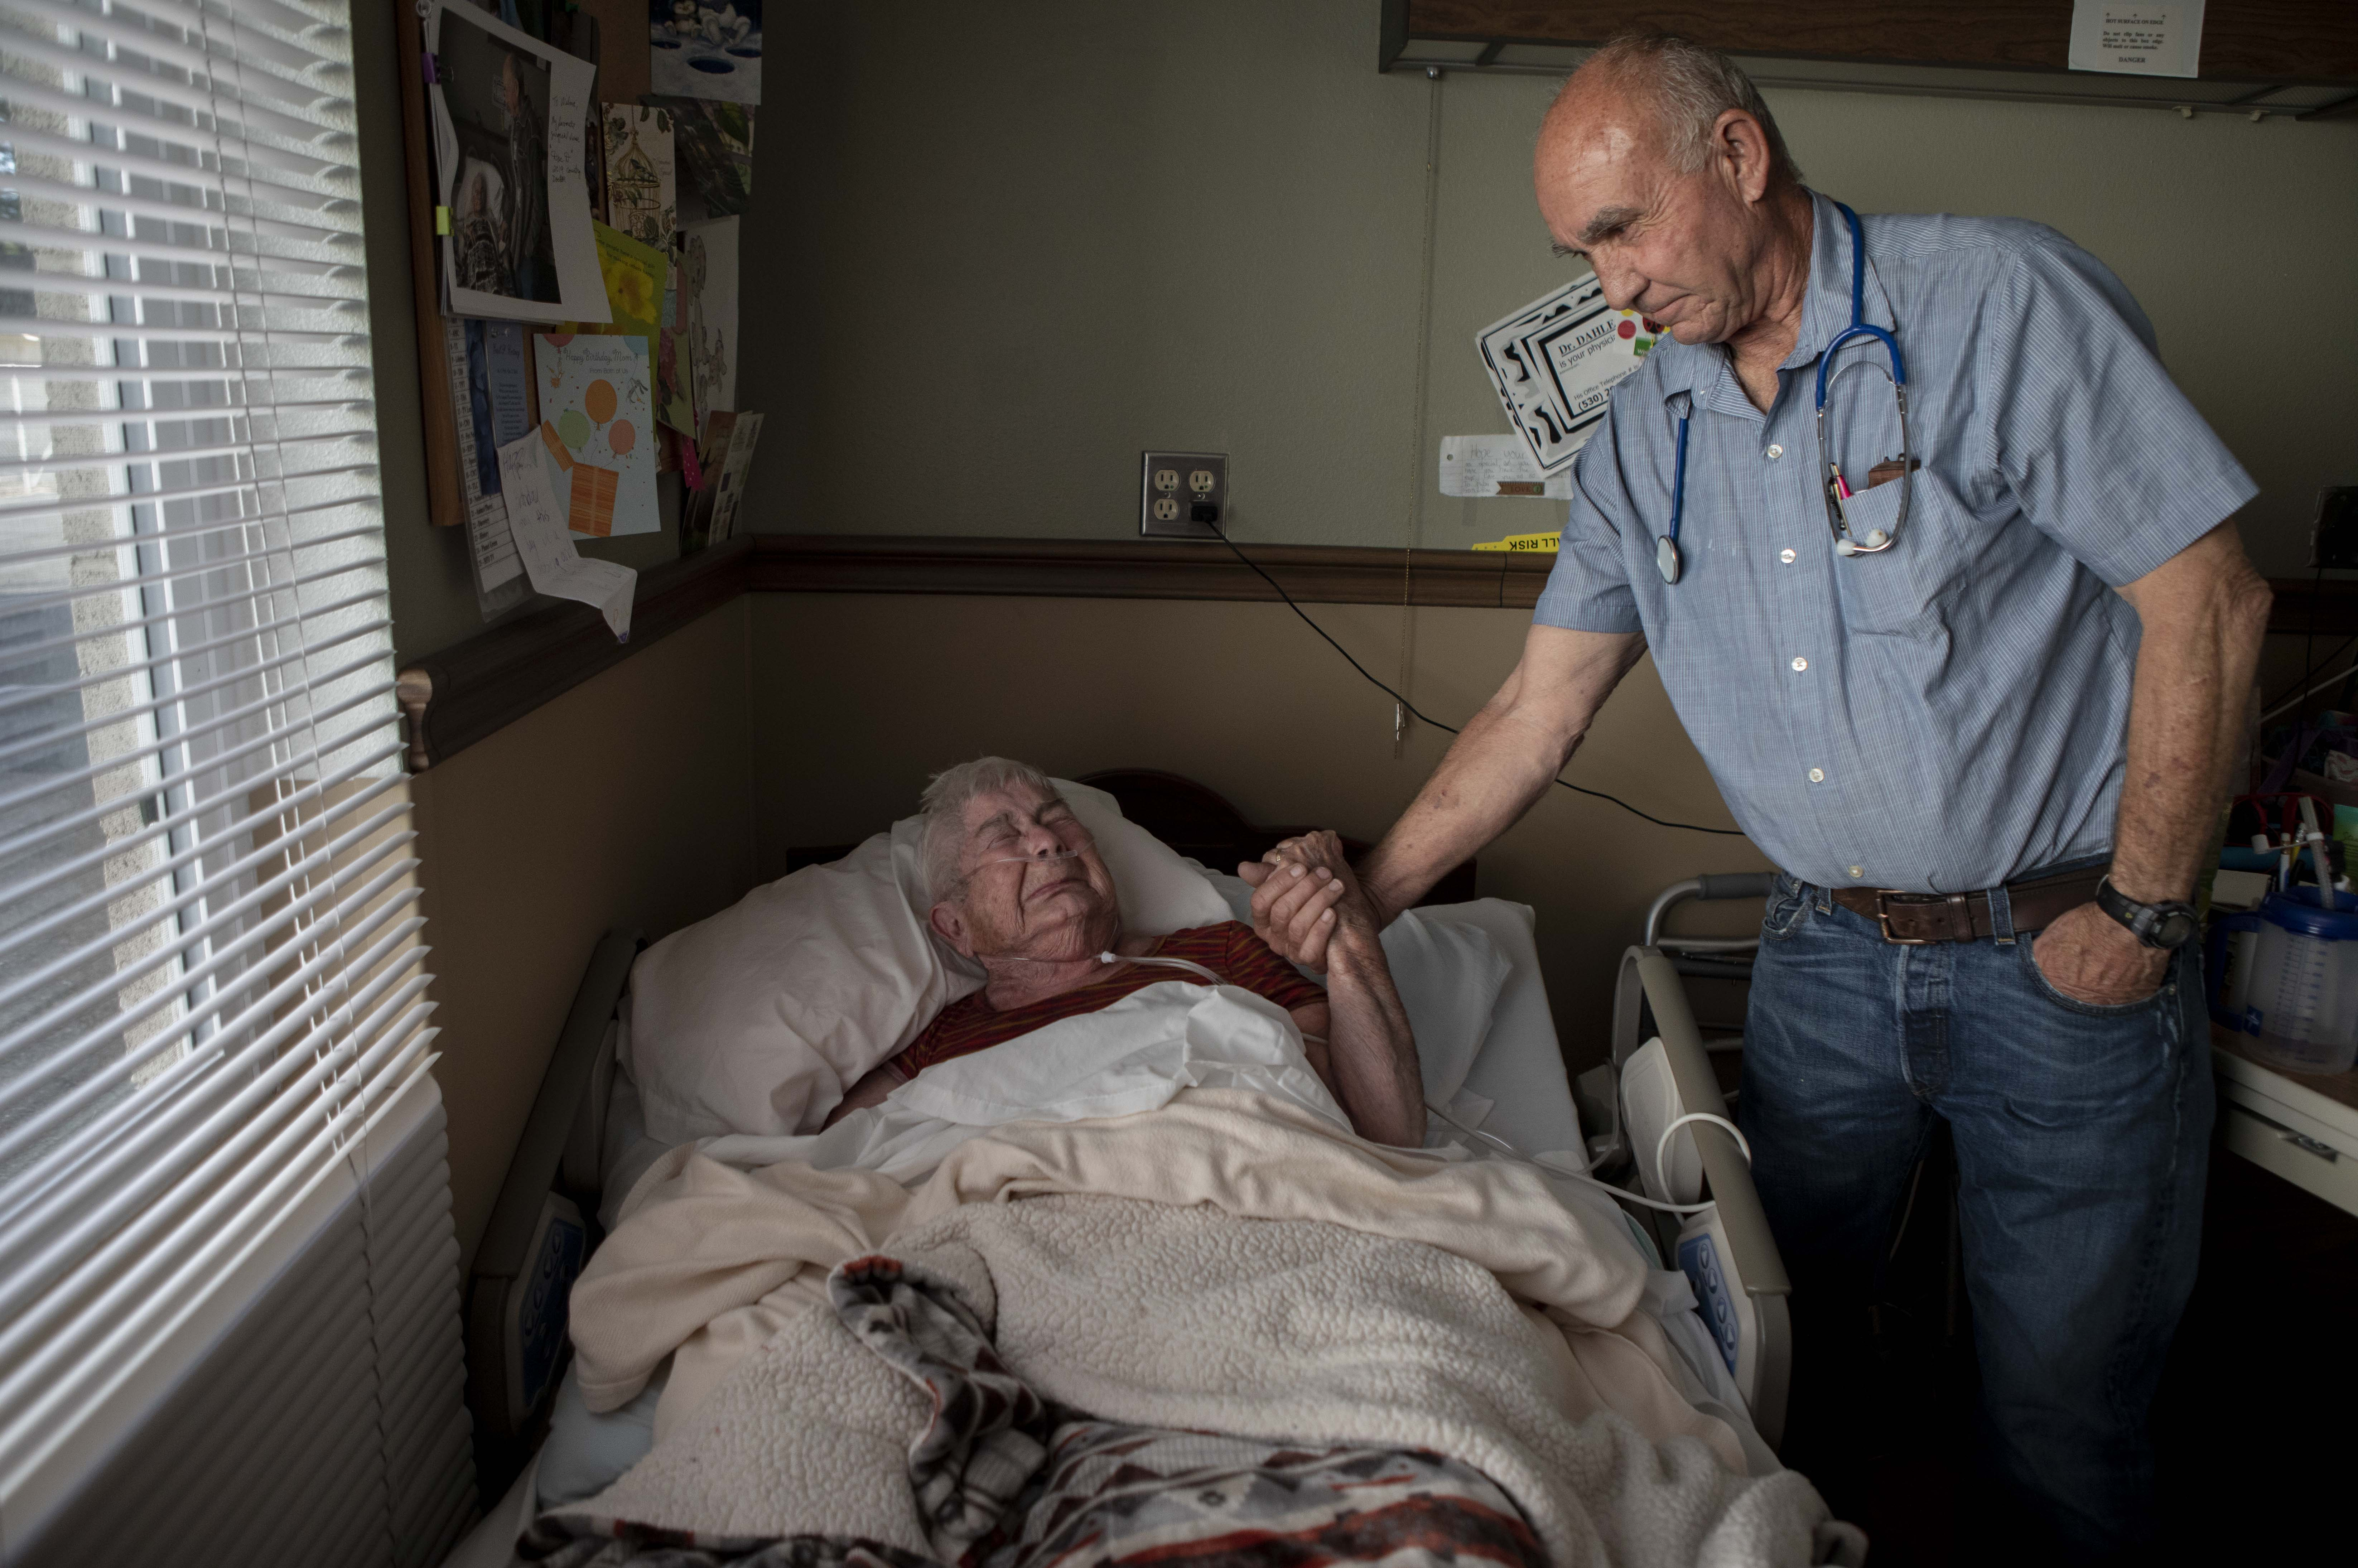 Wilma Chesbroe, a patient and long-time friend of Dr. Dan Dahle, sobs and holds hands with the doctor as they joke and reminisce about the many years they spent working together at the Fall River Mill hospital. Photo by Anne Wernikoff for CalMatters